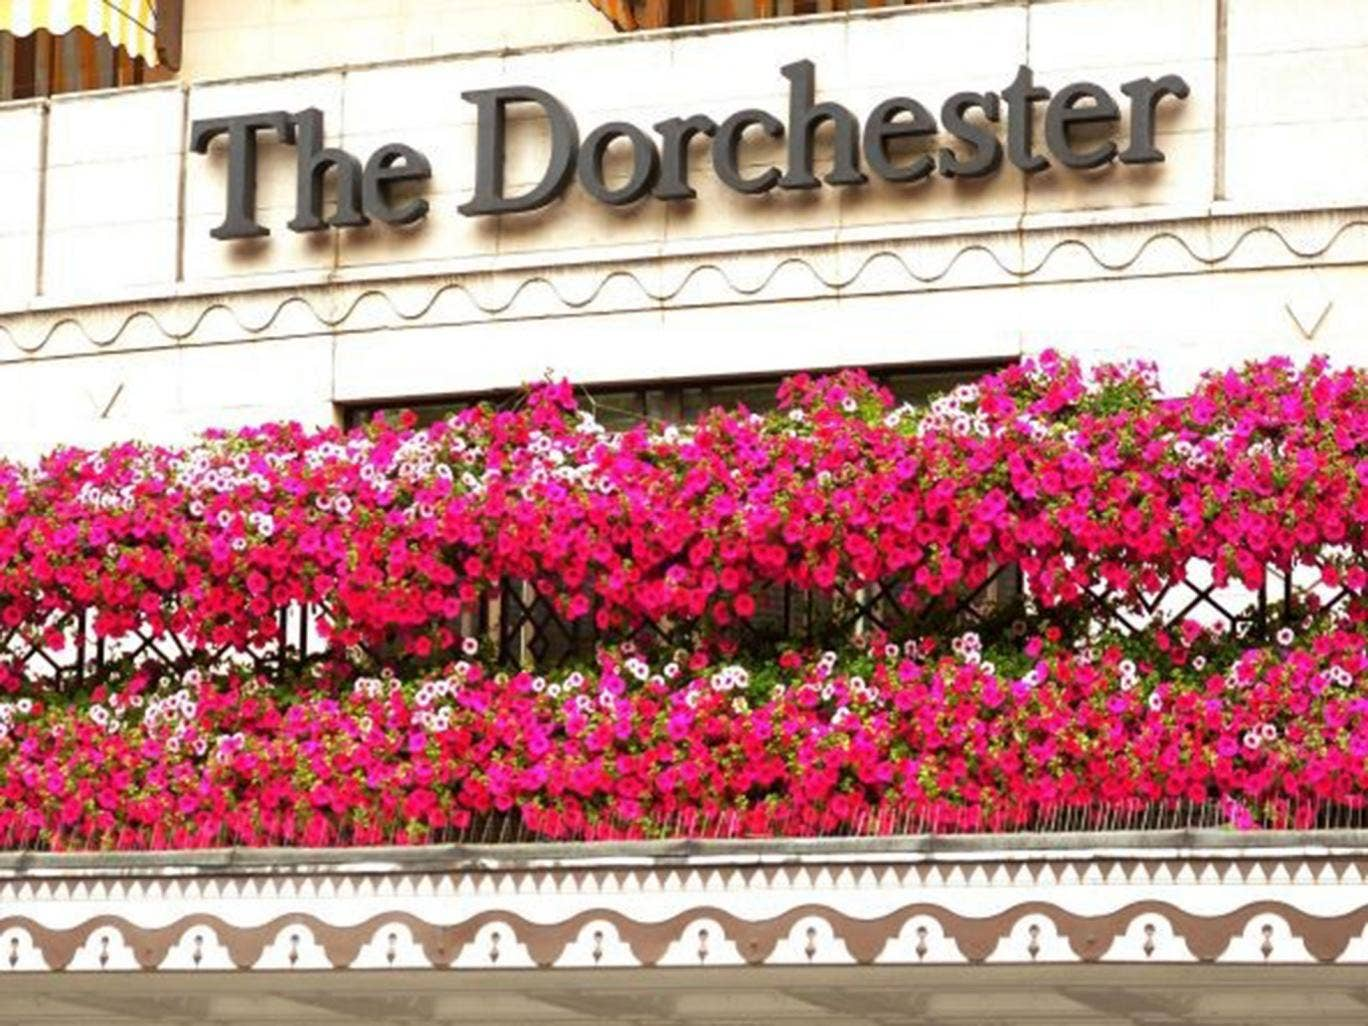 The main entrance to the Dorchester Hotel in Park Lane, central London